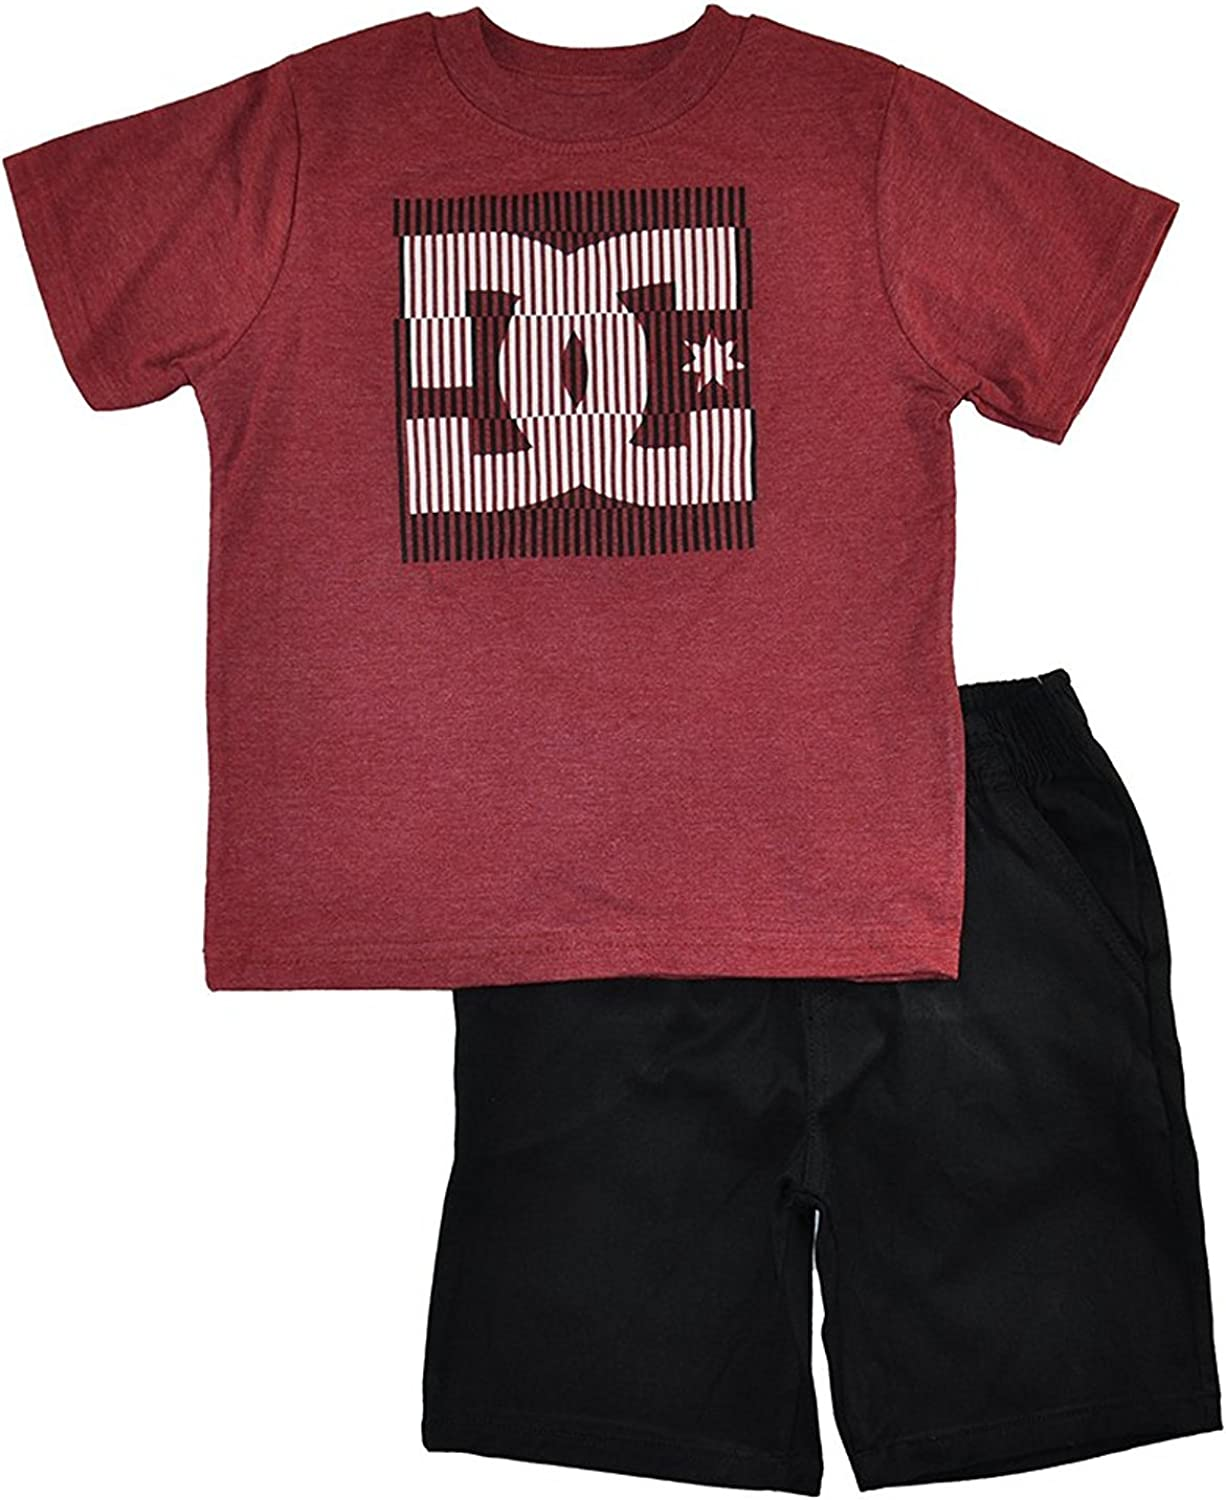 DC Shoes Max 73% OFF Little Boys Logo Top Set Tampa Mall Short 2pc